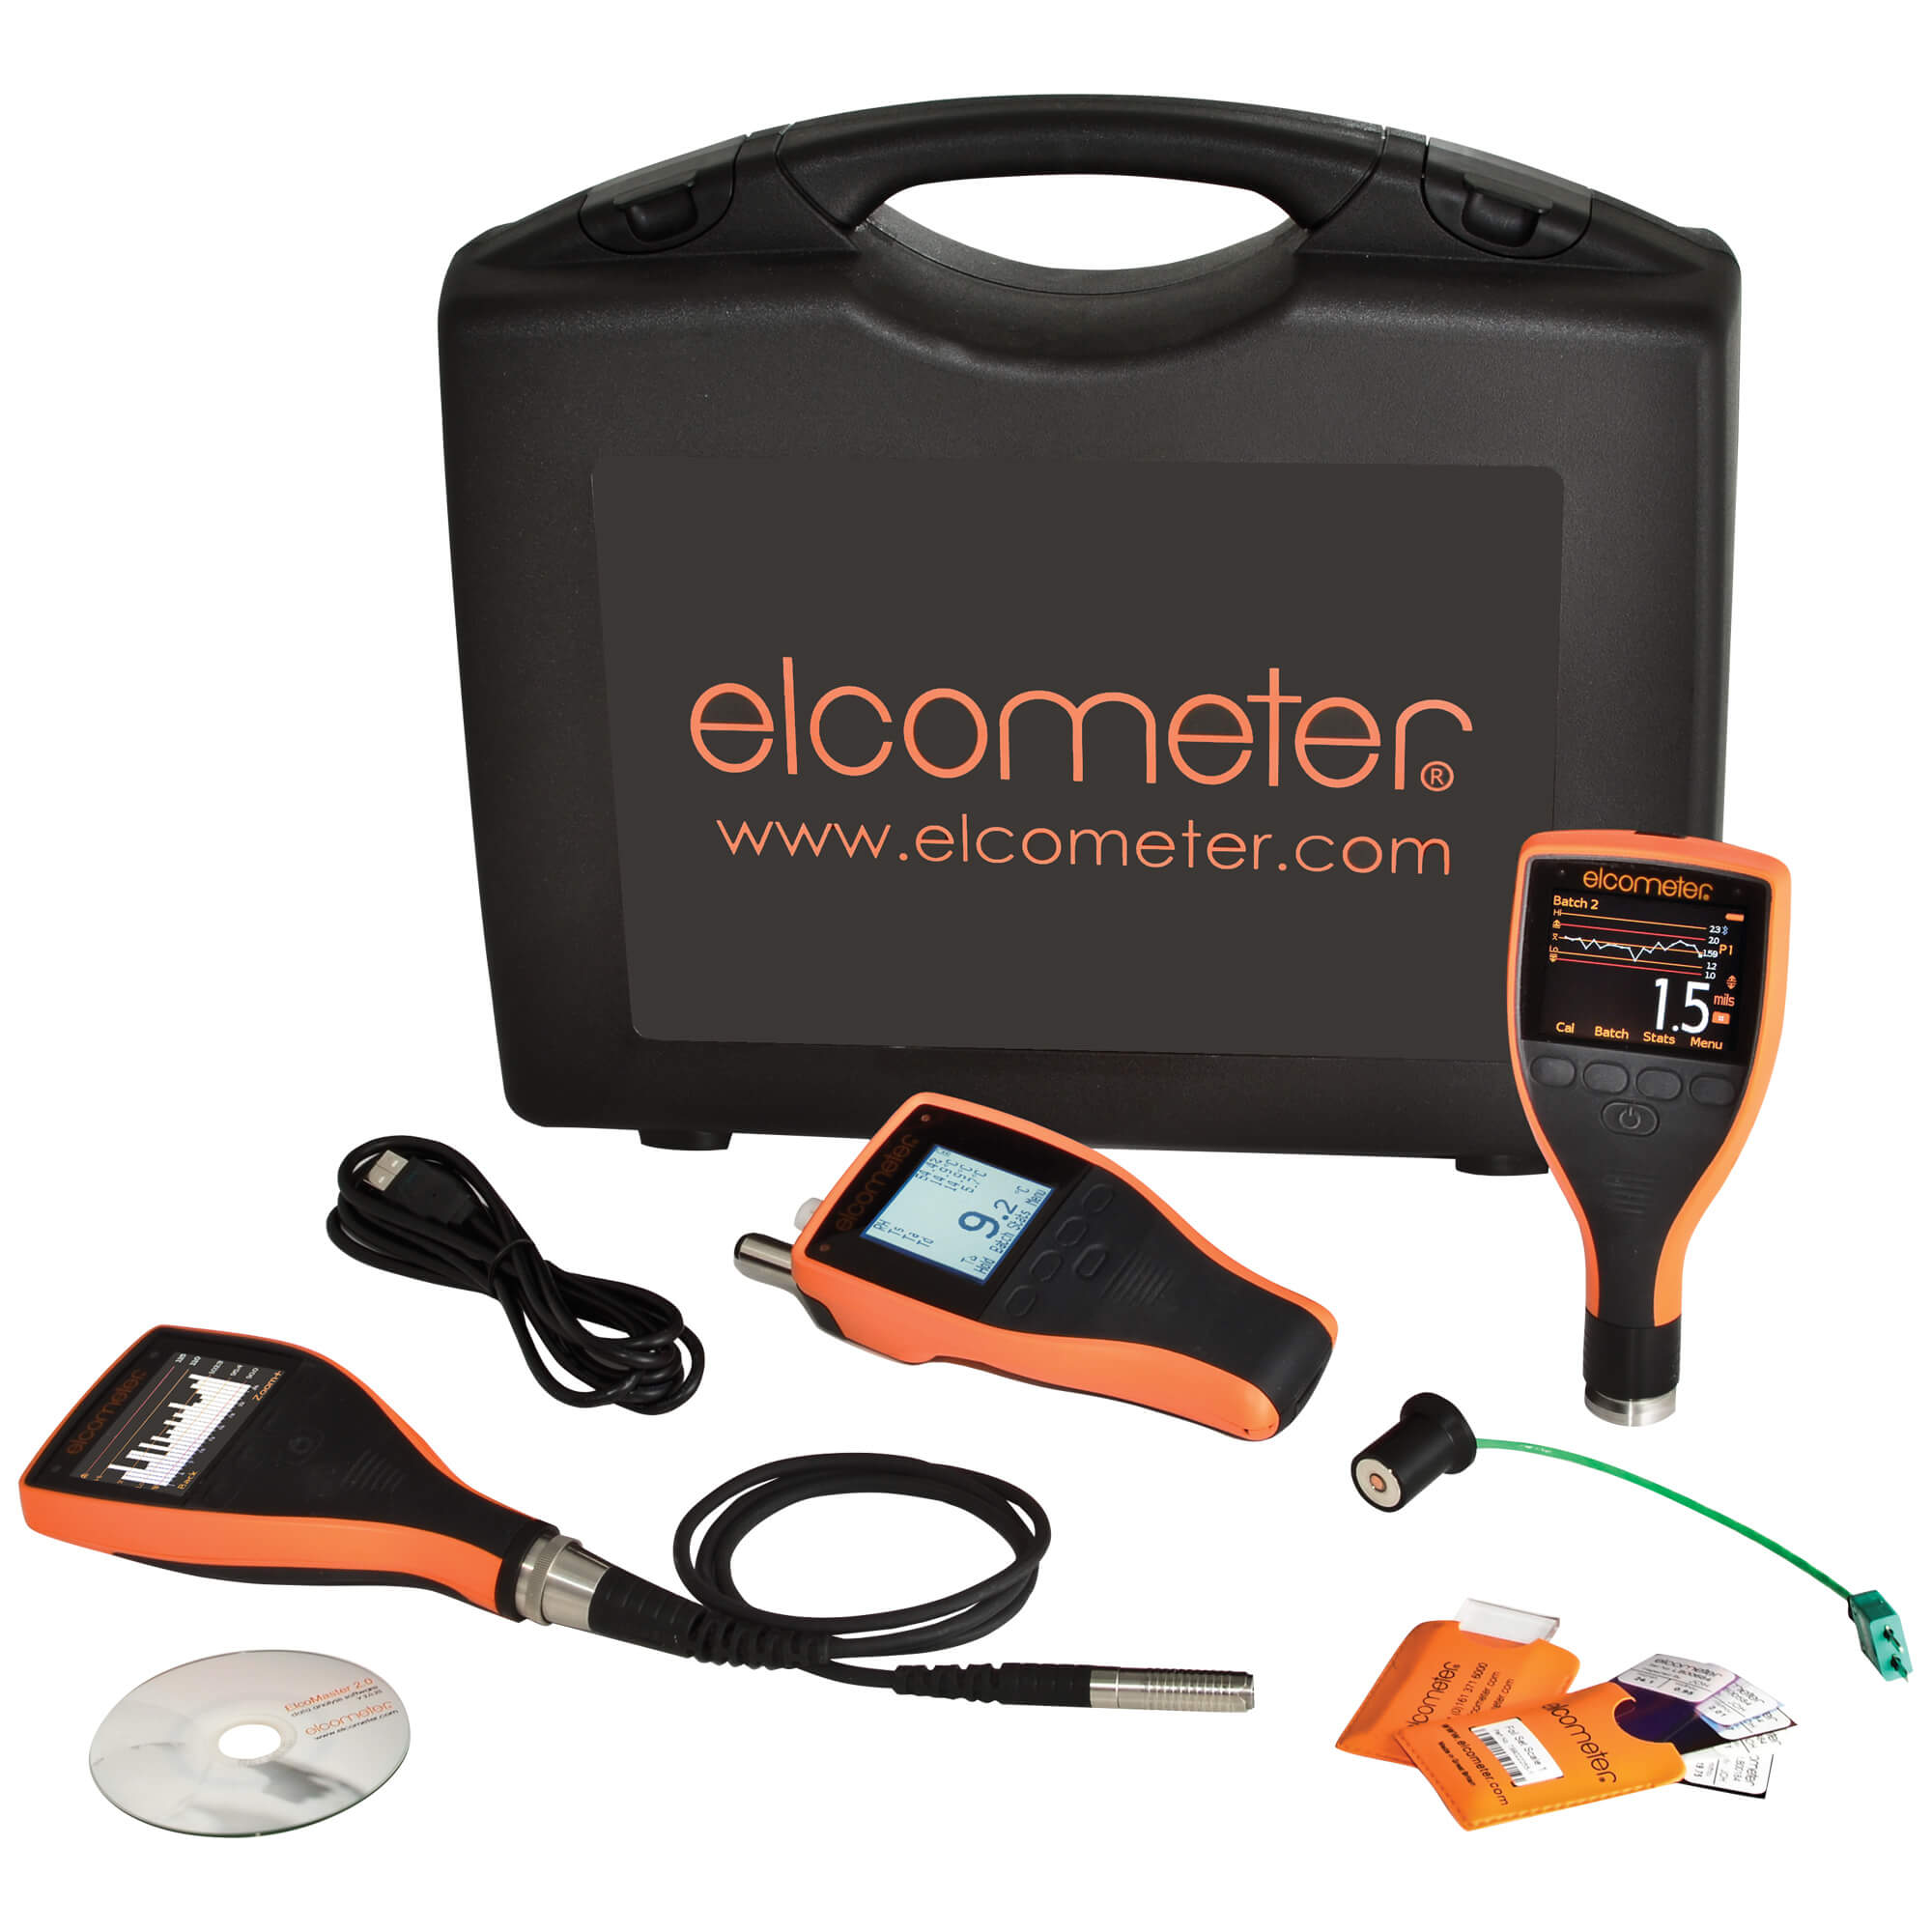 Elcometer Digital Inspection Kits Model - ProQuip